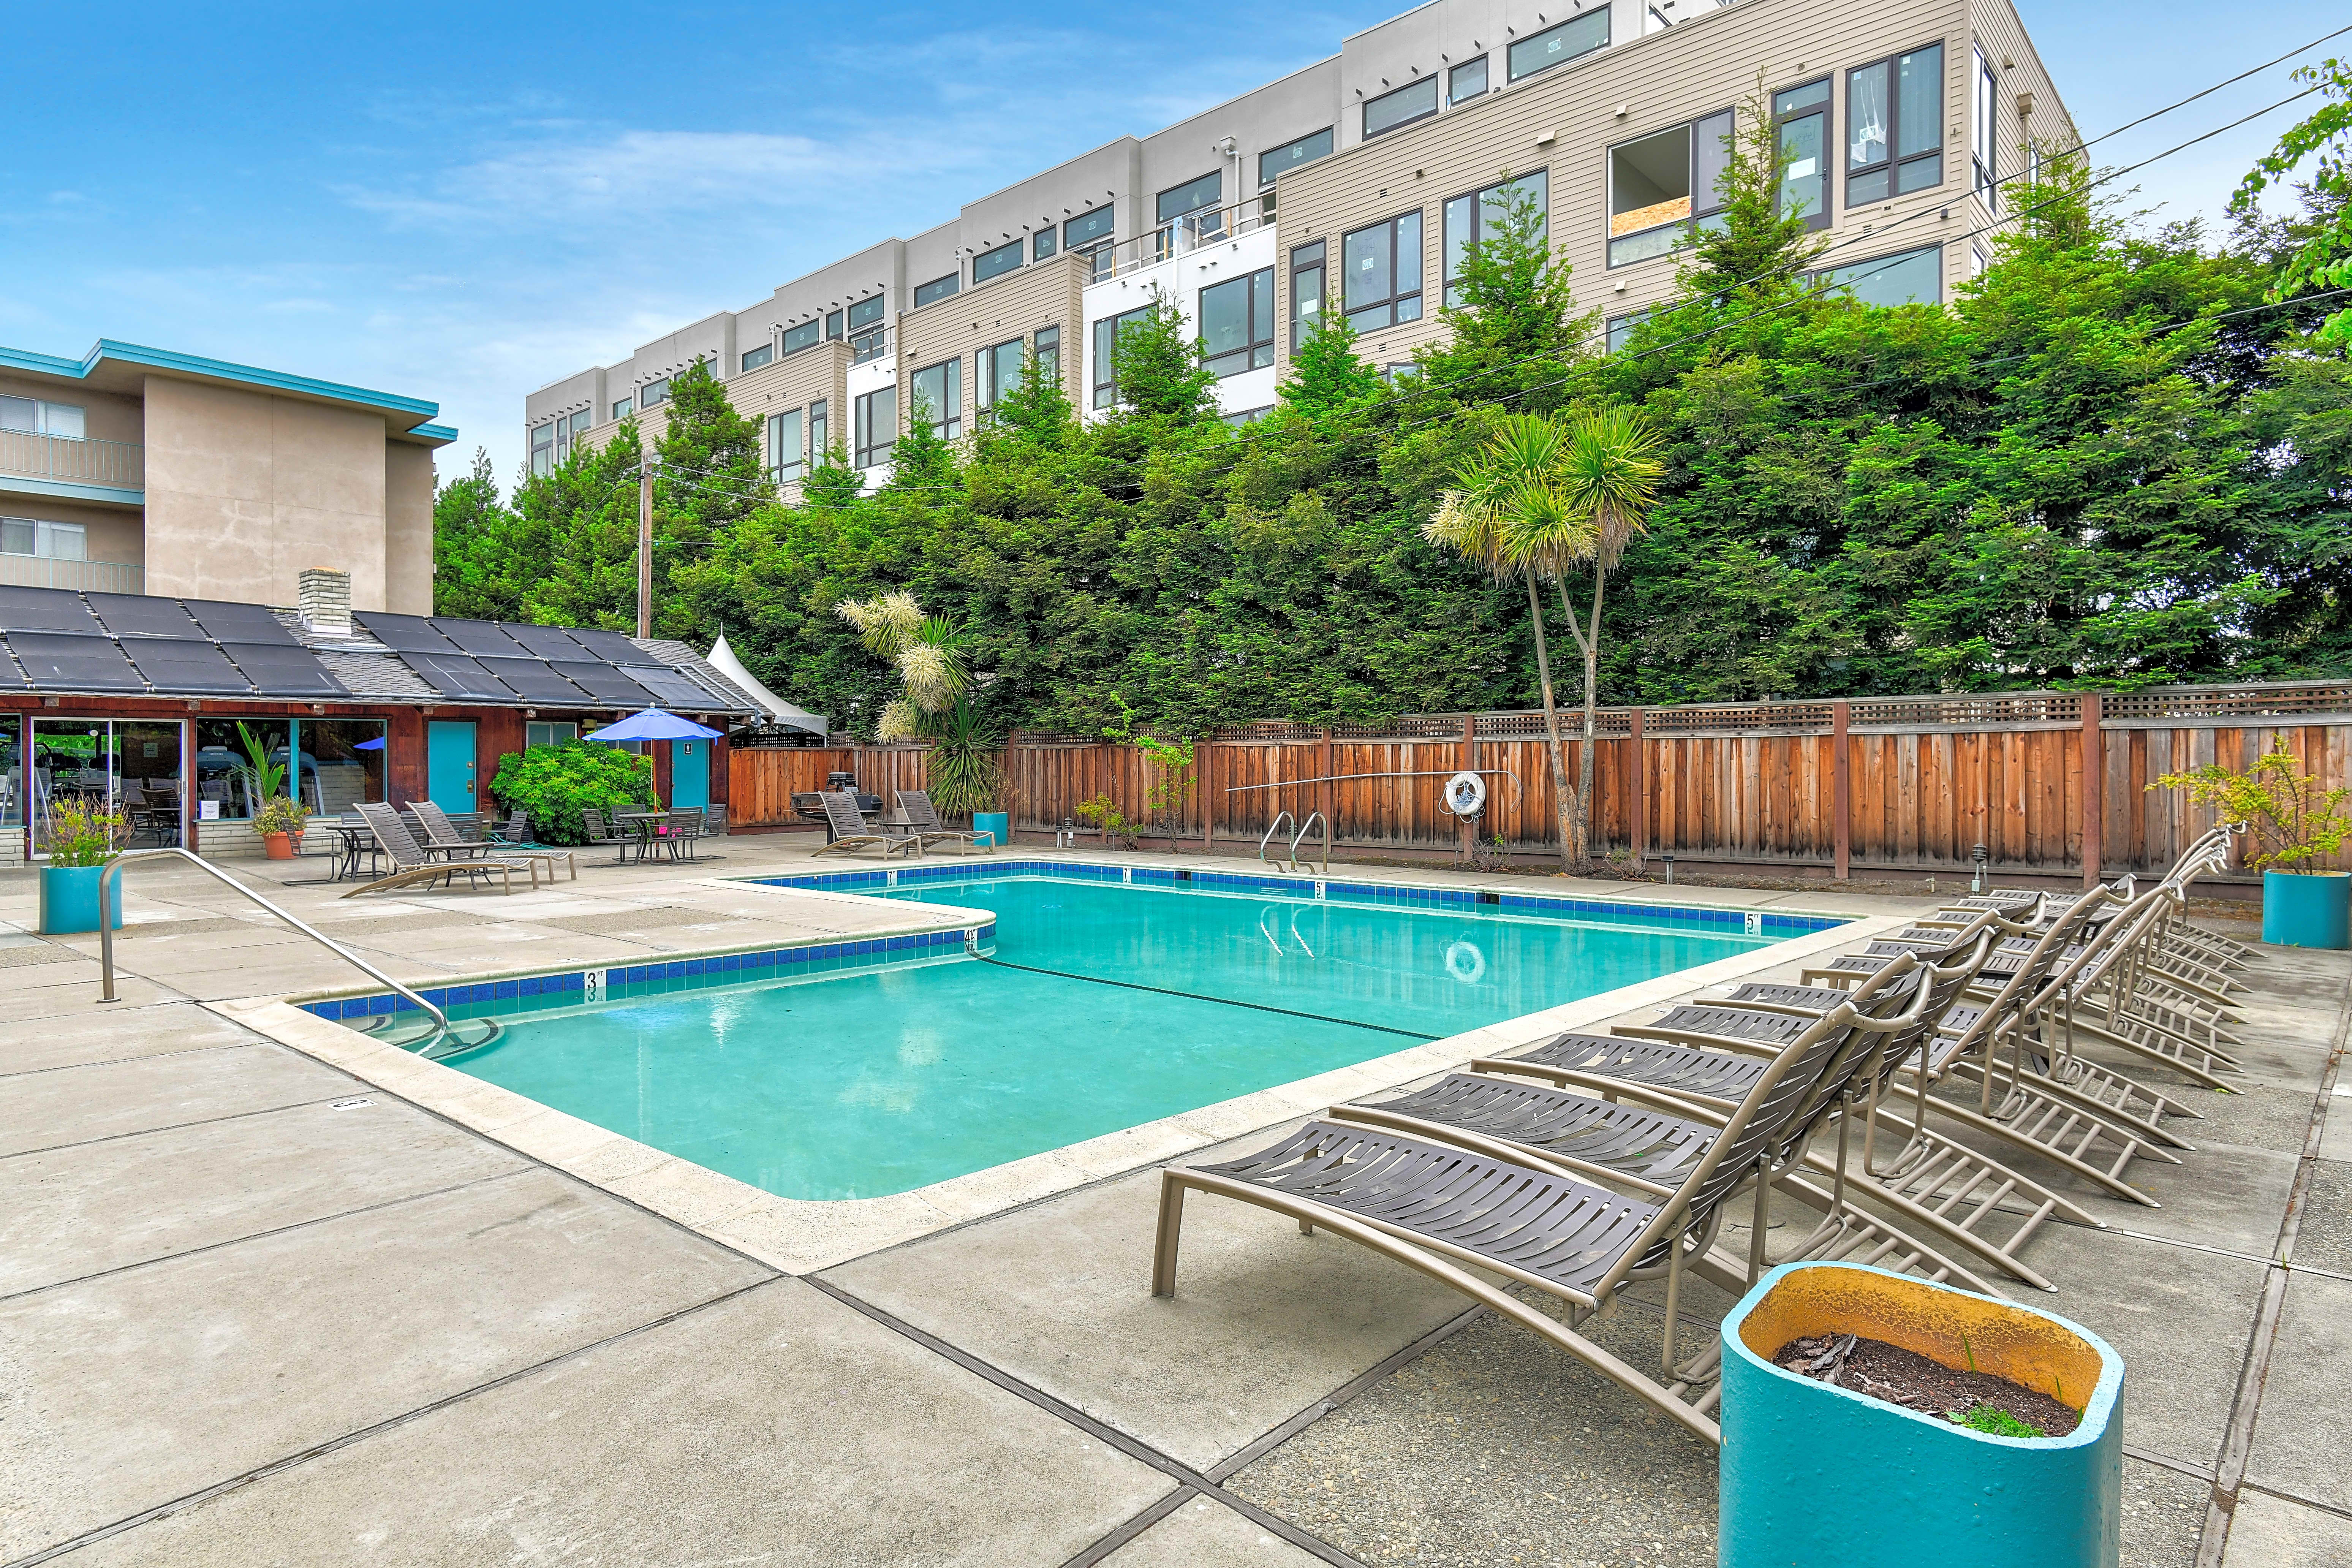 Apartments Near Foothill Fayette Arms for Foothill College Students in Los Altos Hills, CA